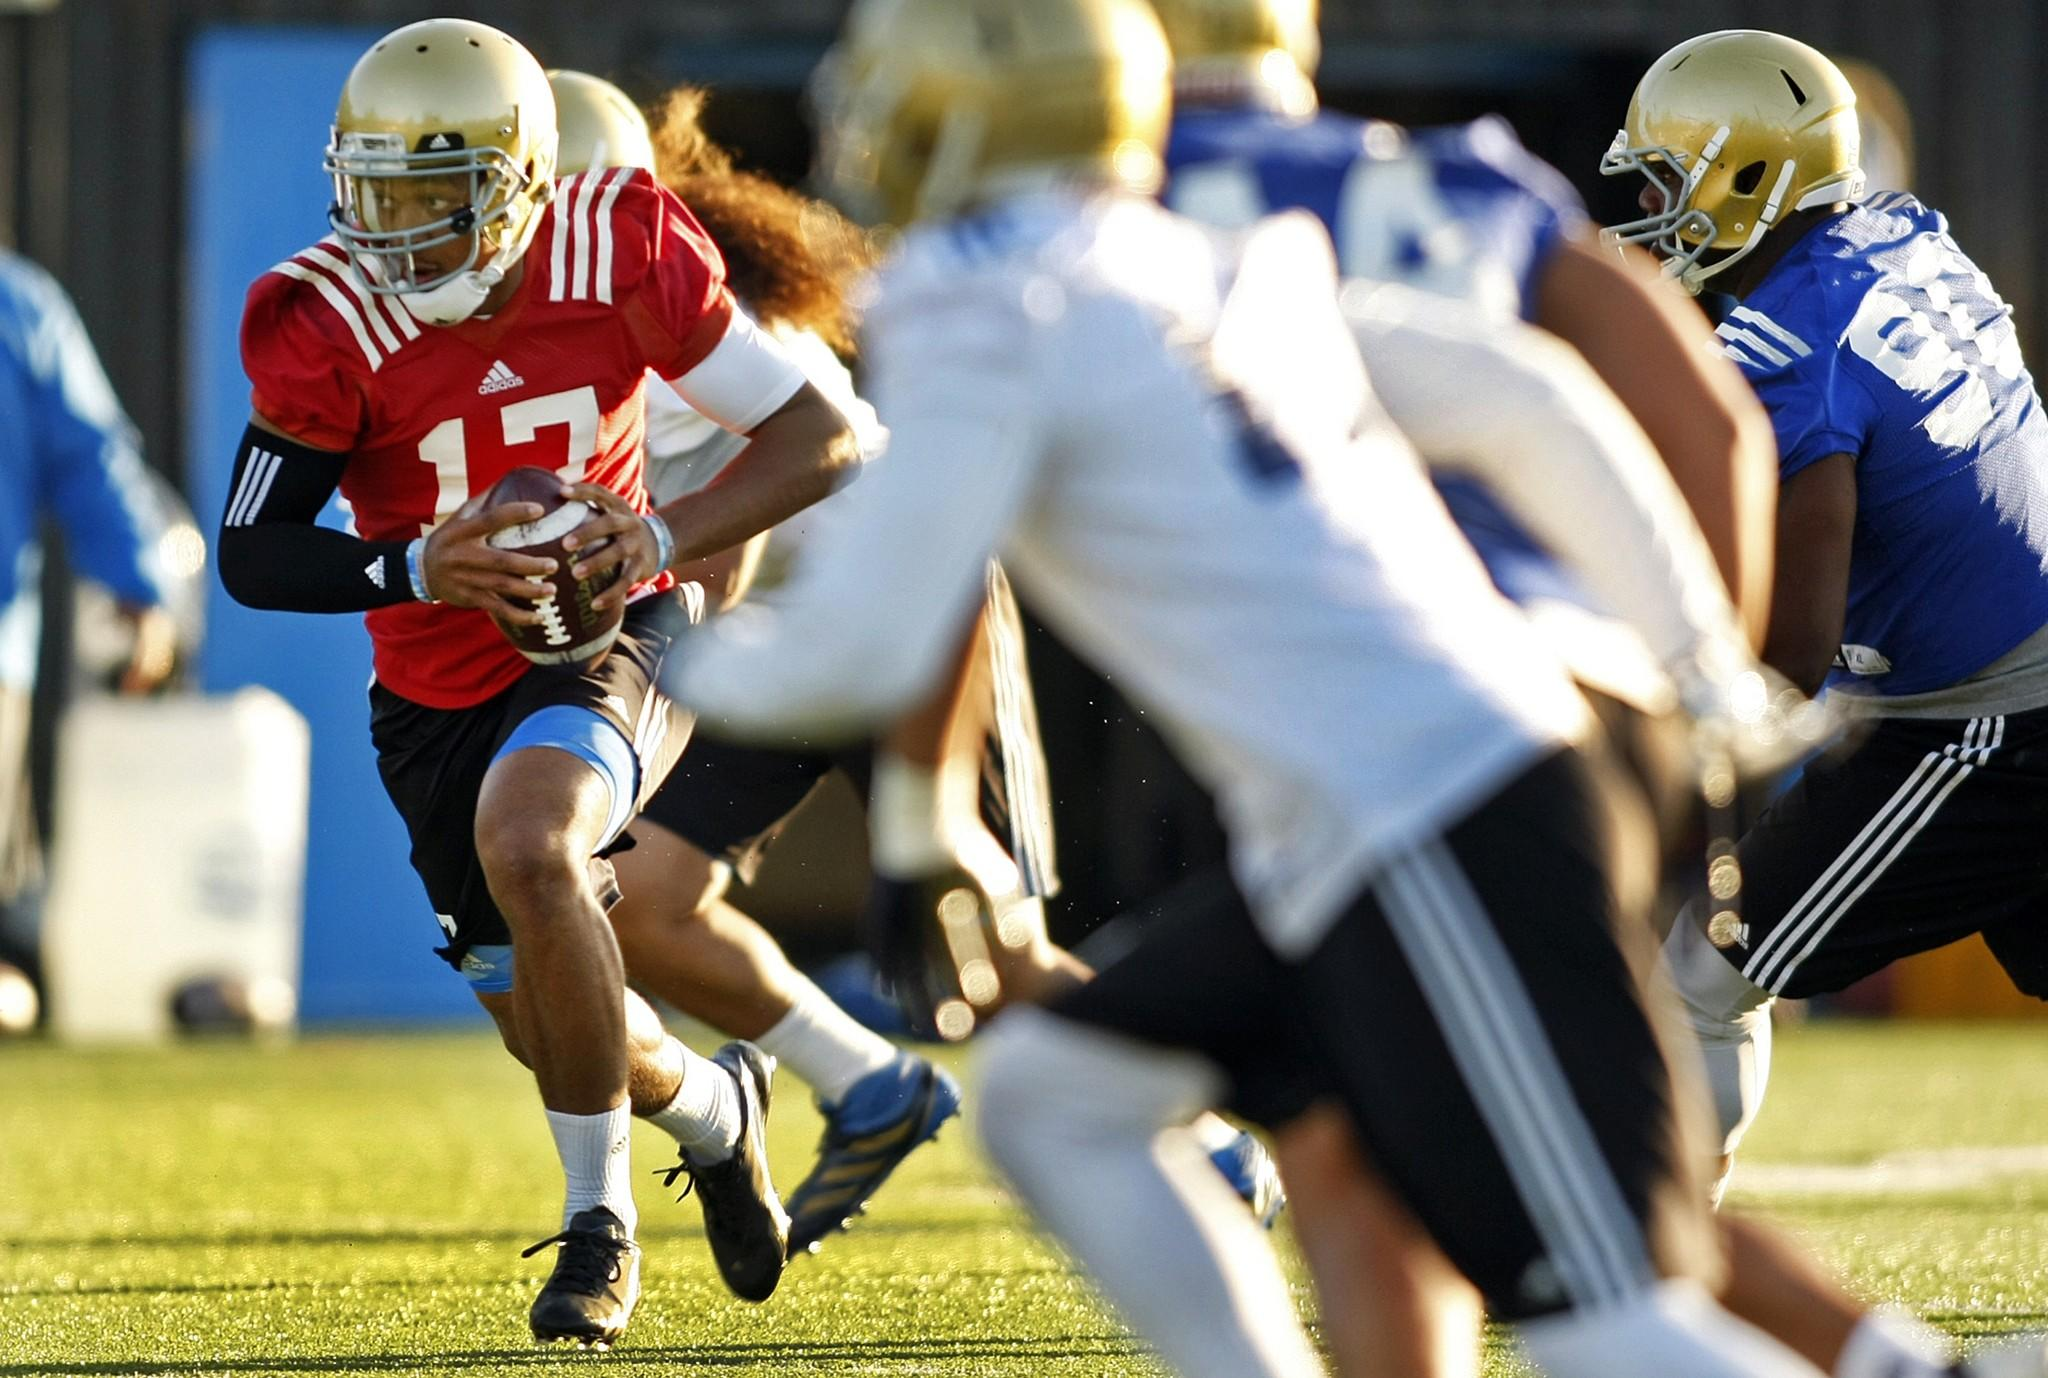 UCLA quarterback Brett Hundley and the Bruins' first team offense will face off against the first team defense at the school's spring game at StubHub Center on Saturday.